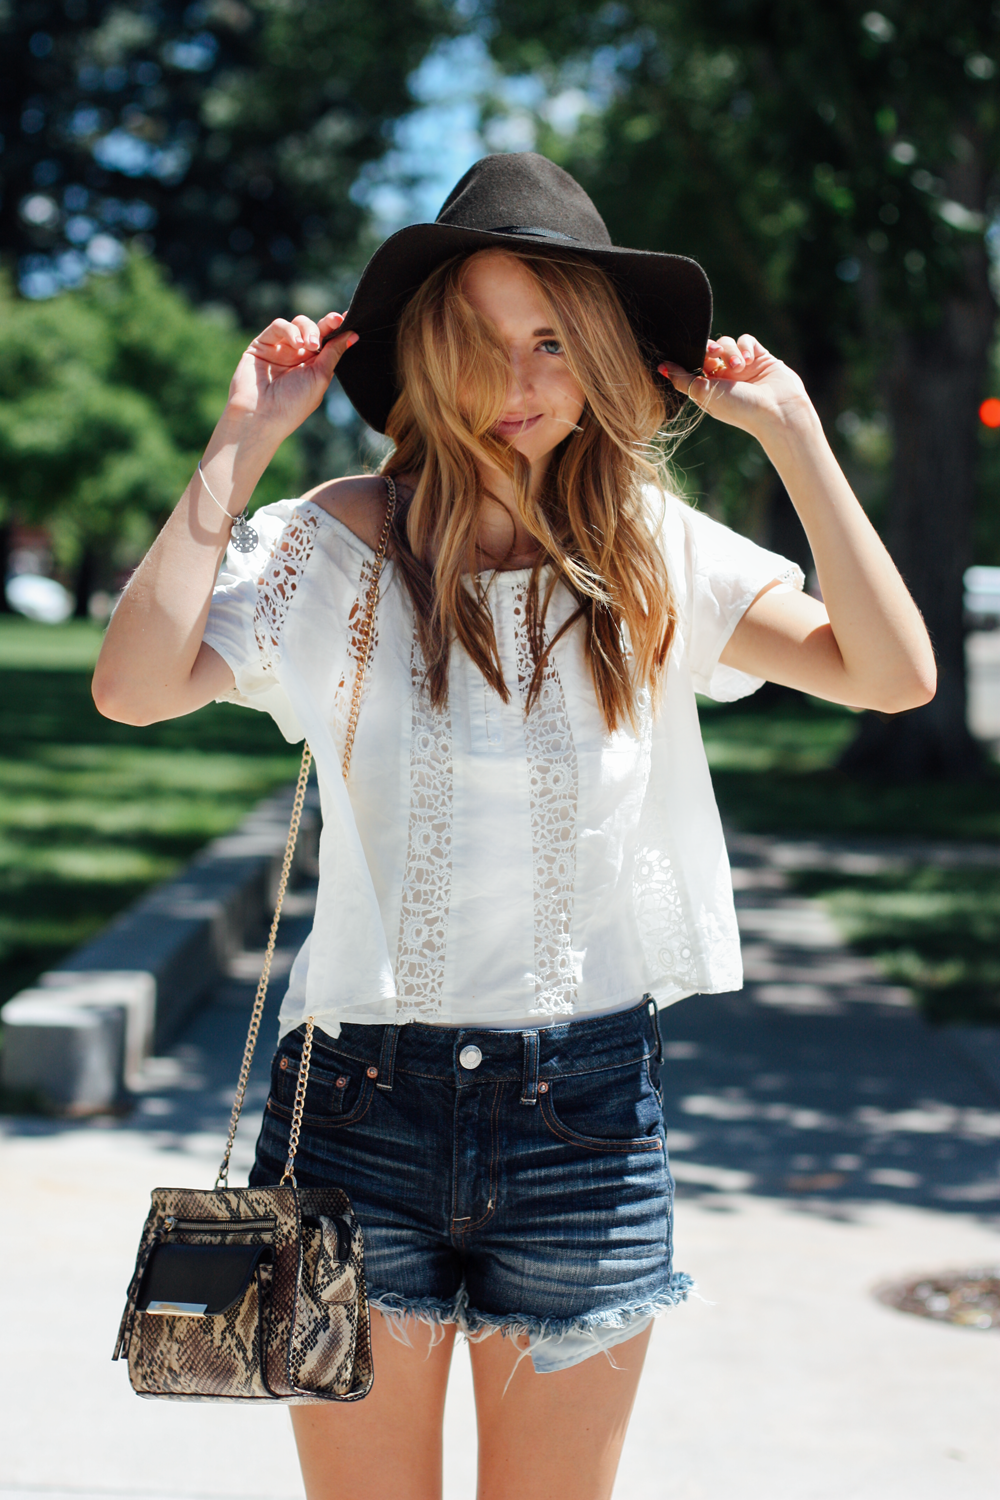 American Eagle hat, Forever 21 blouse, and JustFab handbag via truelane at Cheyenne Frontier Days.png